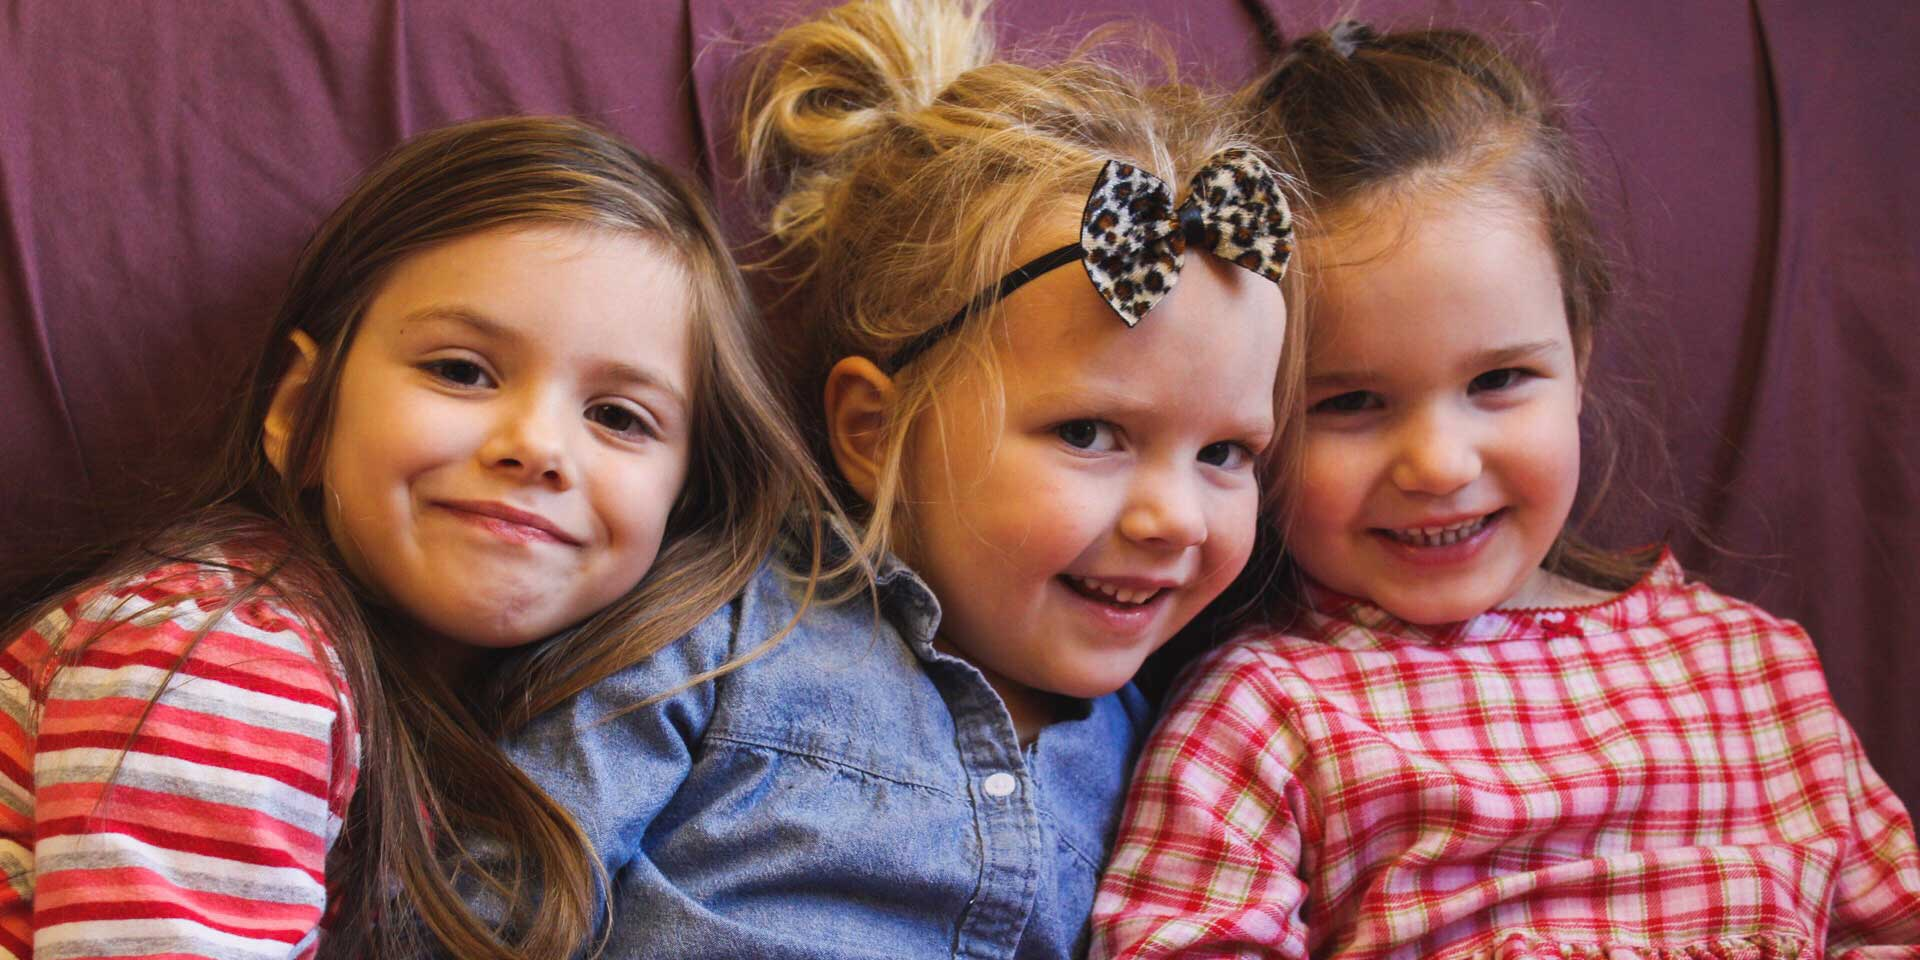 three toddler girls sitting on couch smiling